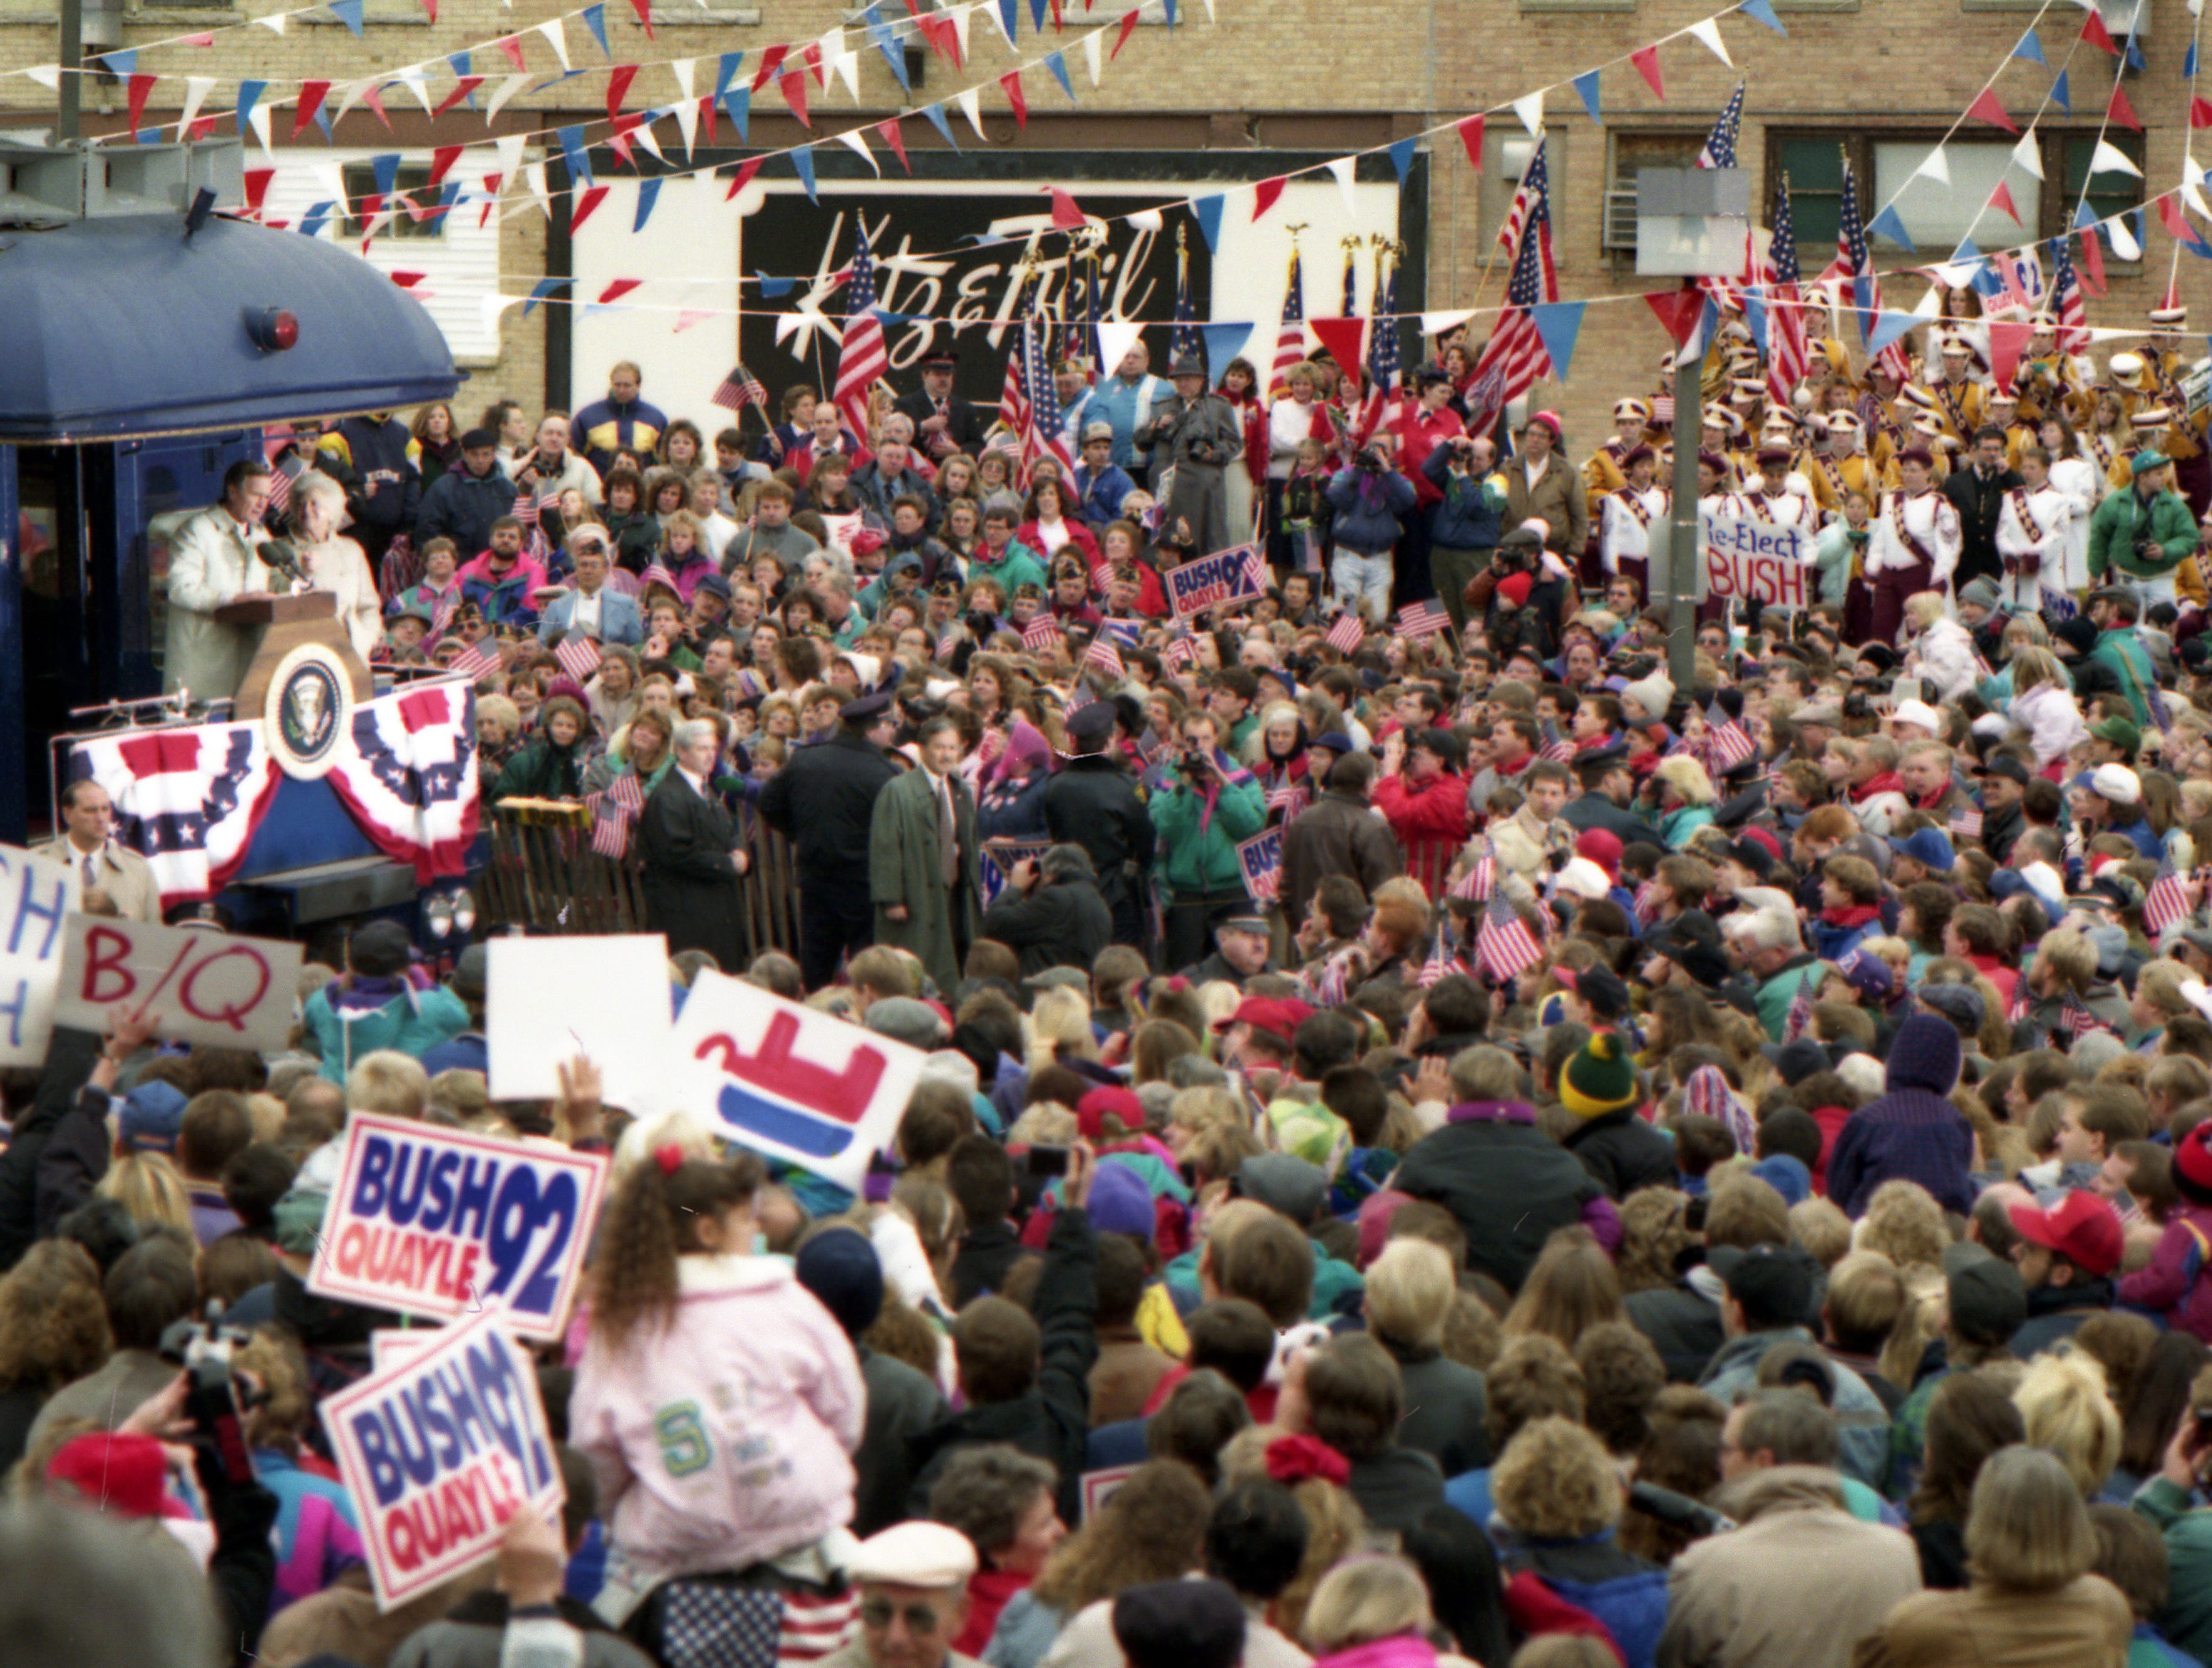 """Oct. 31, 1992. President George H. W. Bush spoke from the caboose of his """"Spirit of America"""" train to an Oshkosh crowd estimated at around 5,000 supporters. The whistle-stop campaign passed through Neenah, Dale, Weyauwega, Waupaca, Amherst and Amherst Junction on the way to Stevens Point. Post-Crescent photo by Michael Leschisin"""